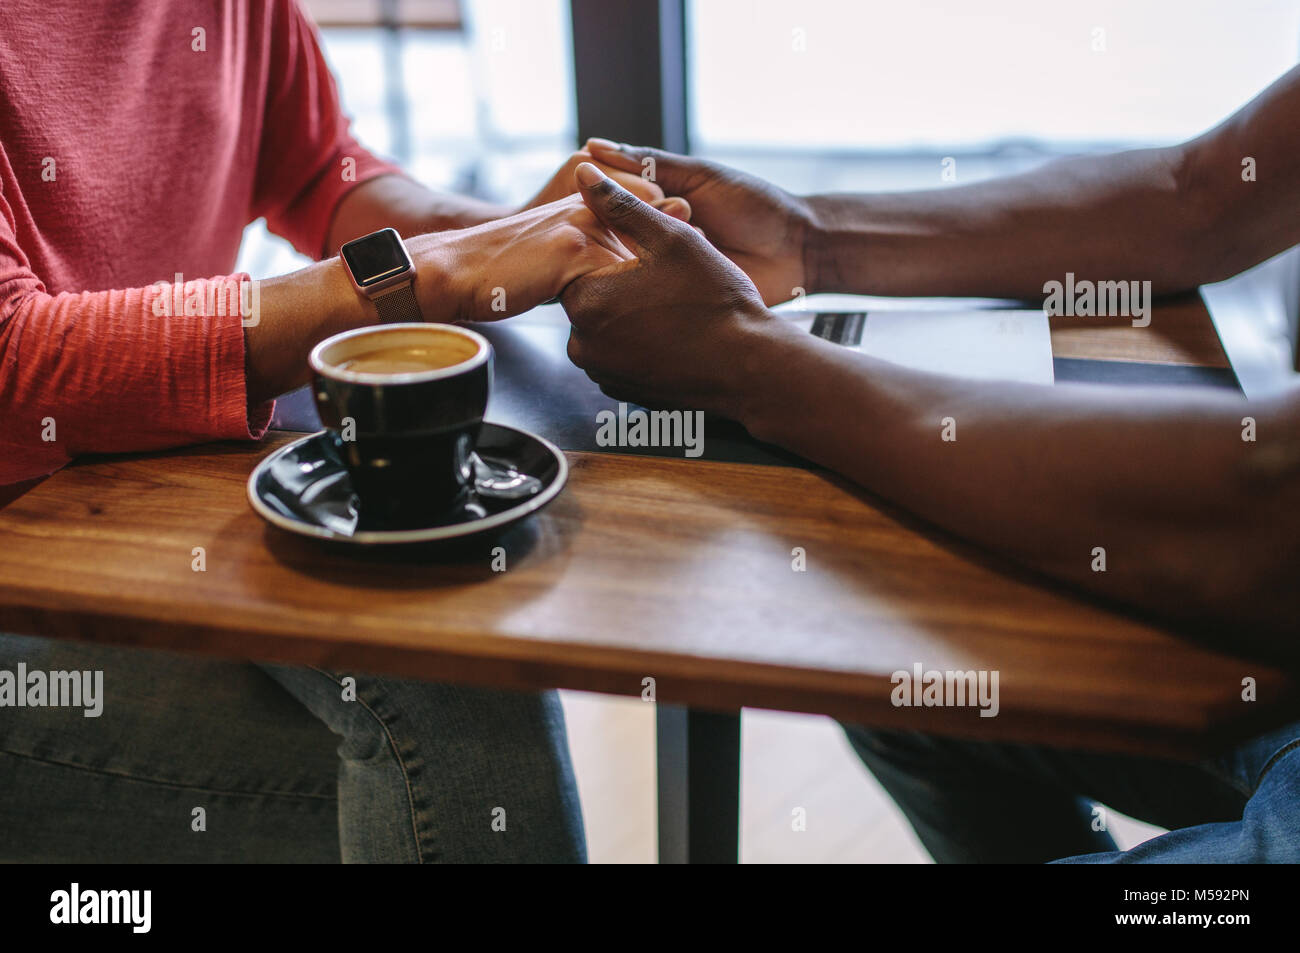 Man and woman sitting at a coffee table holding hands with a cup of coffee on the table. Cropped image of a man - Stock Image